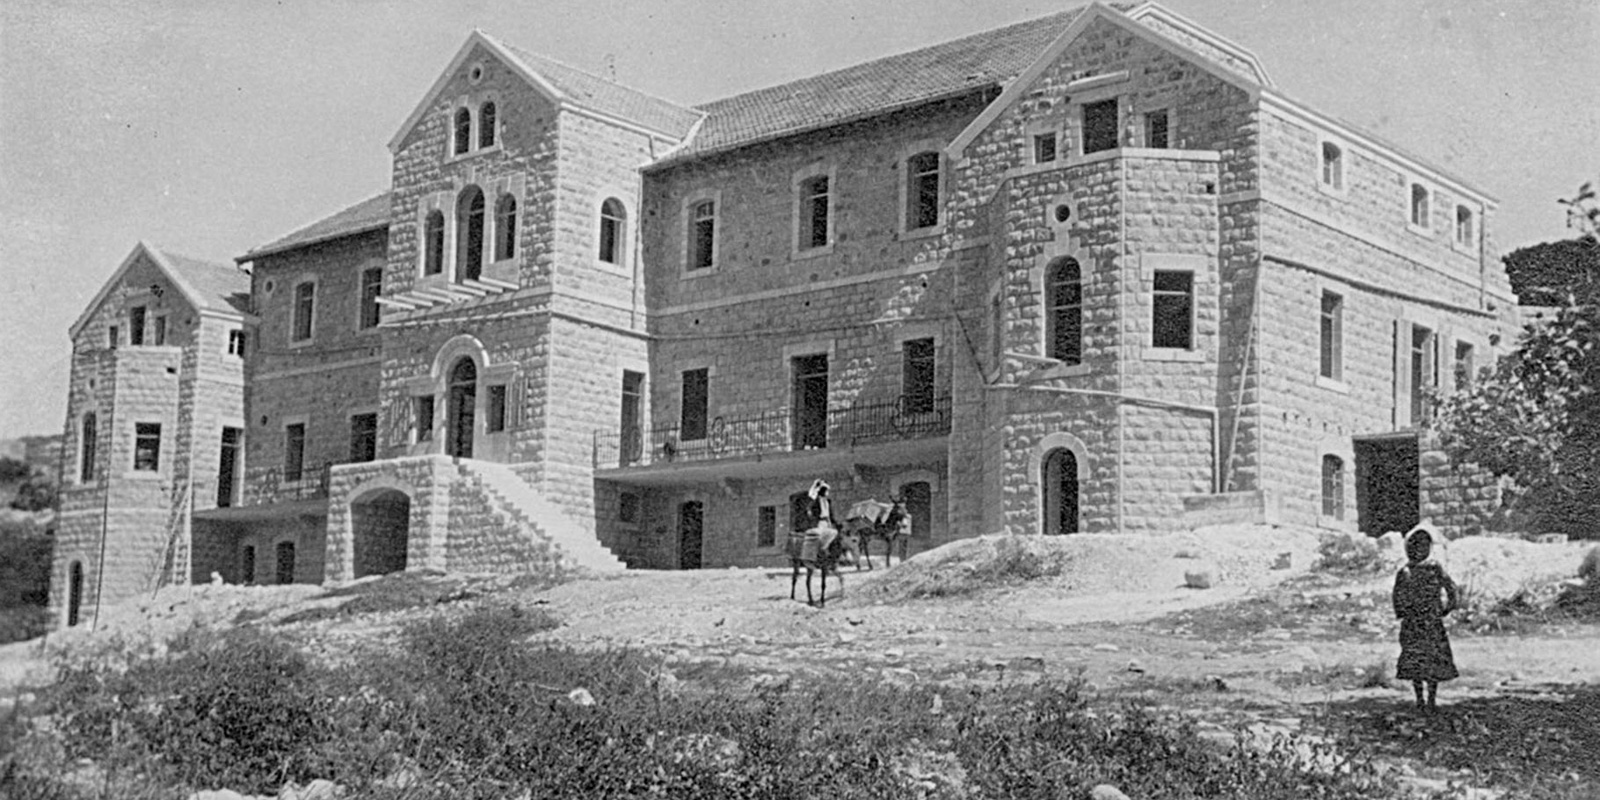 Celebrate our 160 years in Nazareth in 2021